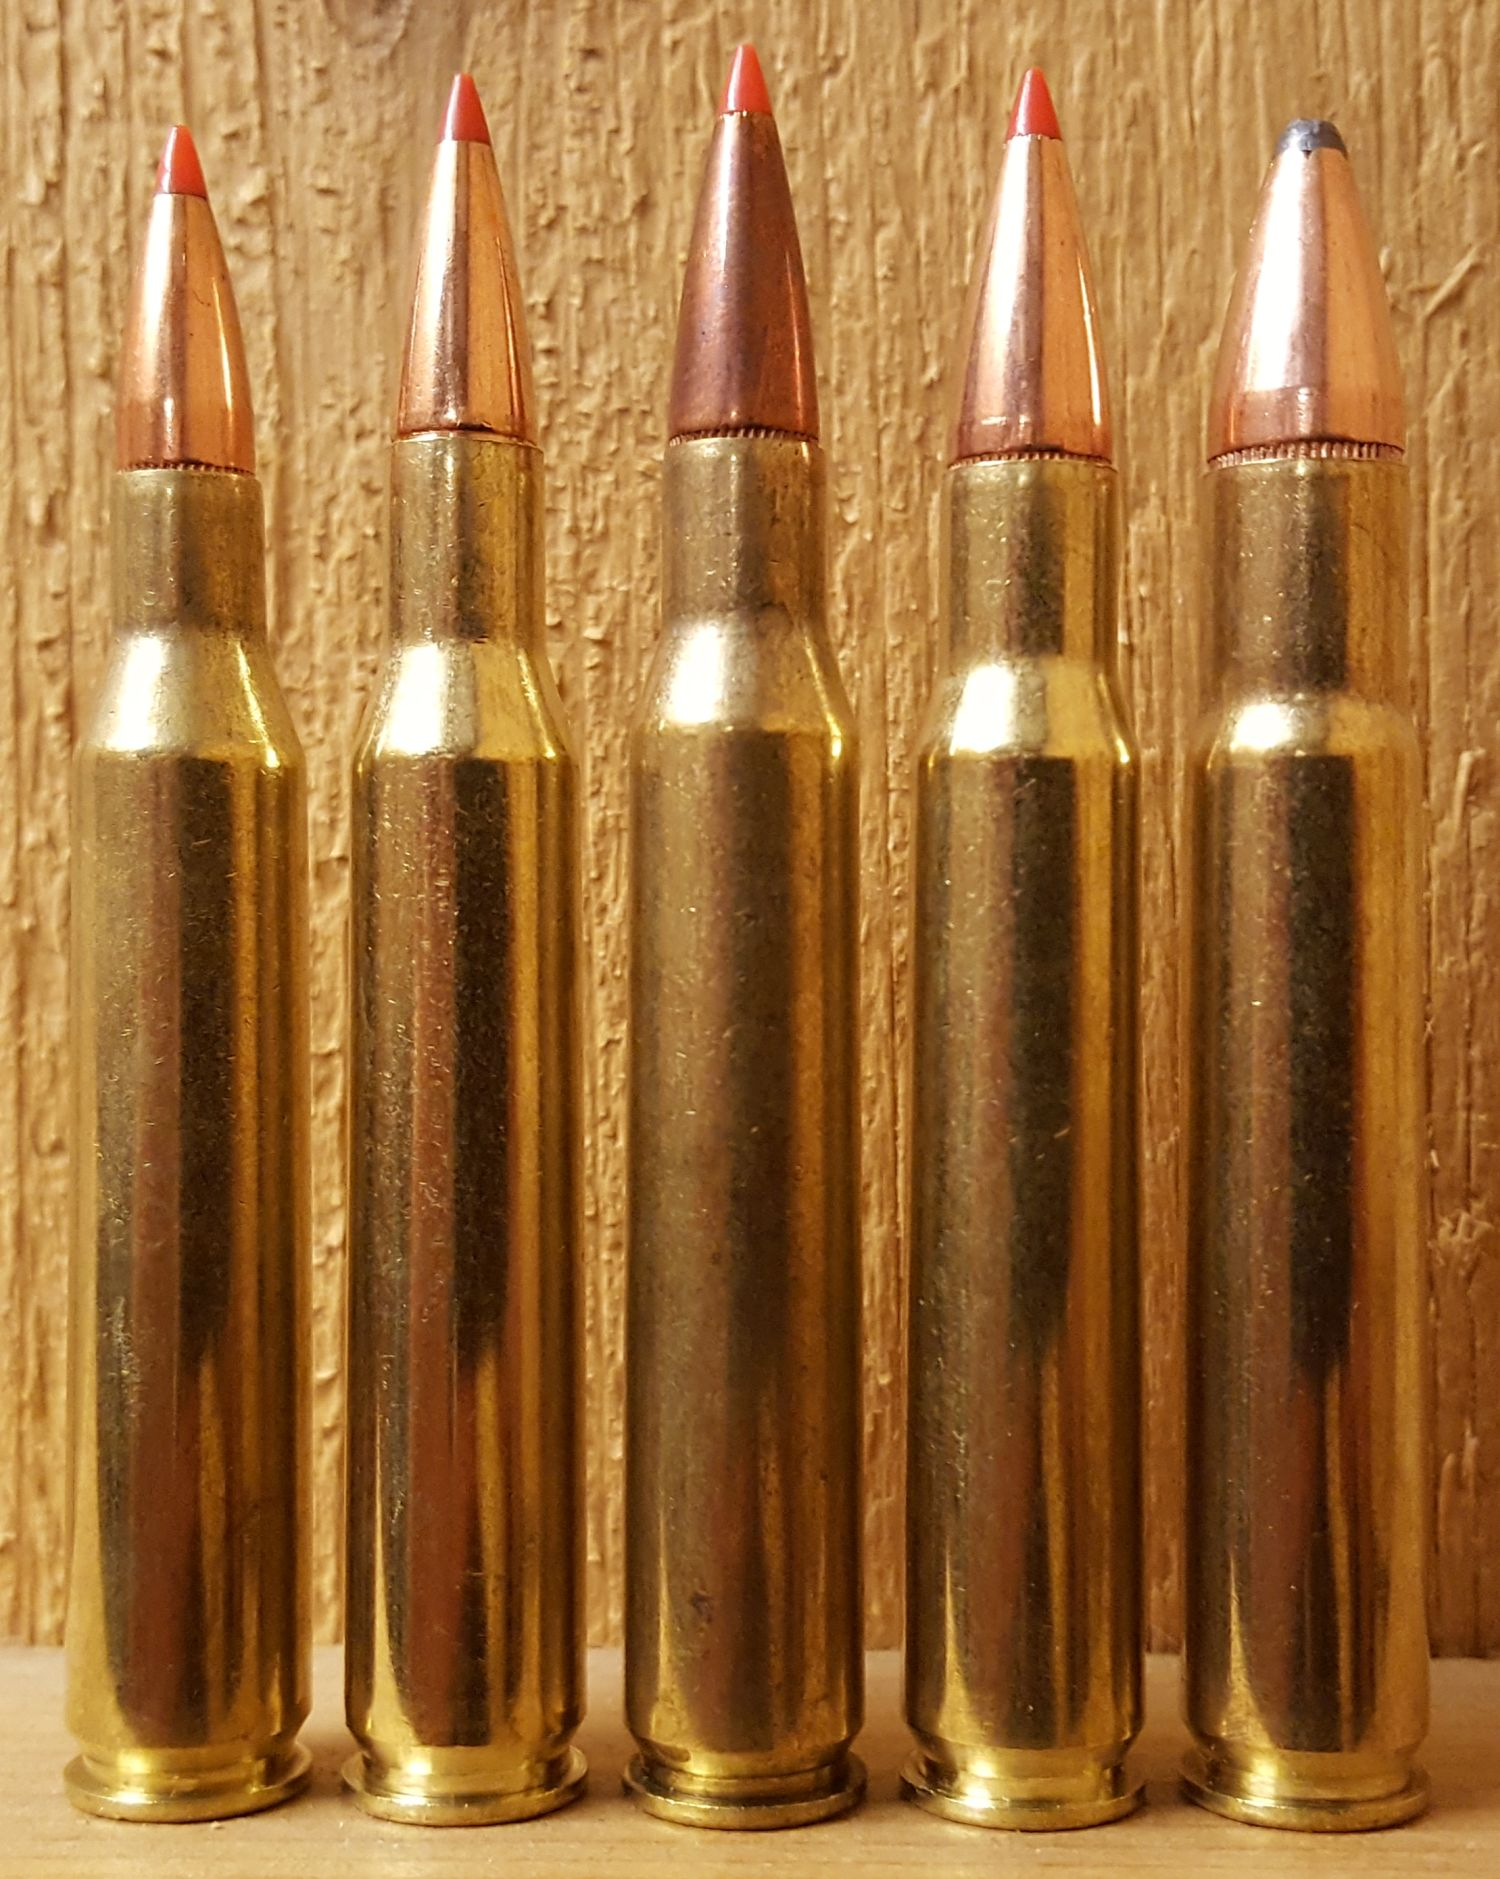 30-06 Springfield wildcat cartridges - Wikipedia